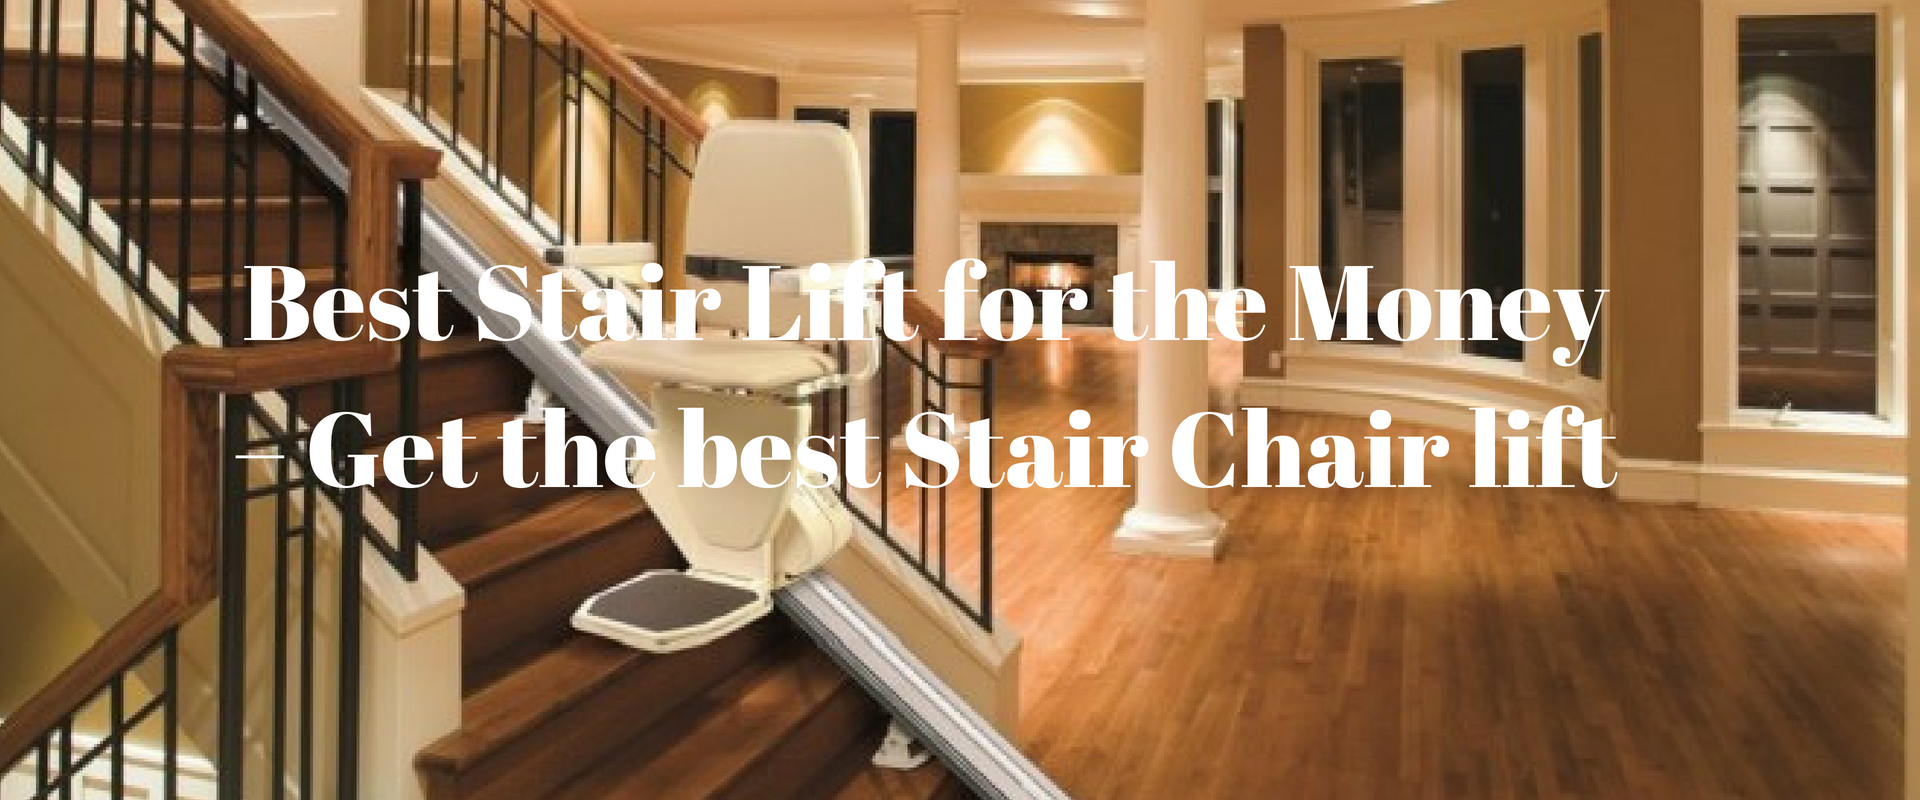 stair chair lift. Or For Those Who Find The Common Online Description Too Mouthy, Simply Put, Stairlifts Are Mechanized Chairs Used To Ferry People Up And Down Stairs Stair Chair Lift L